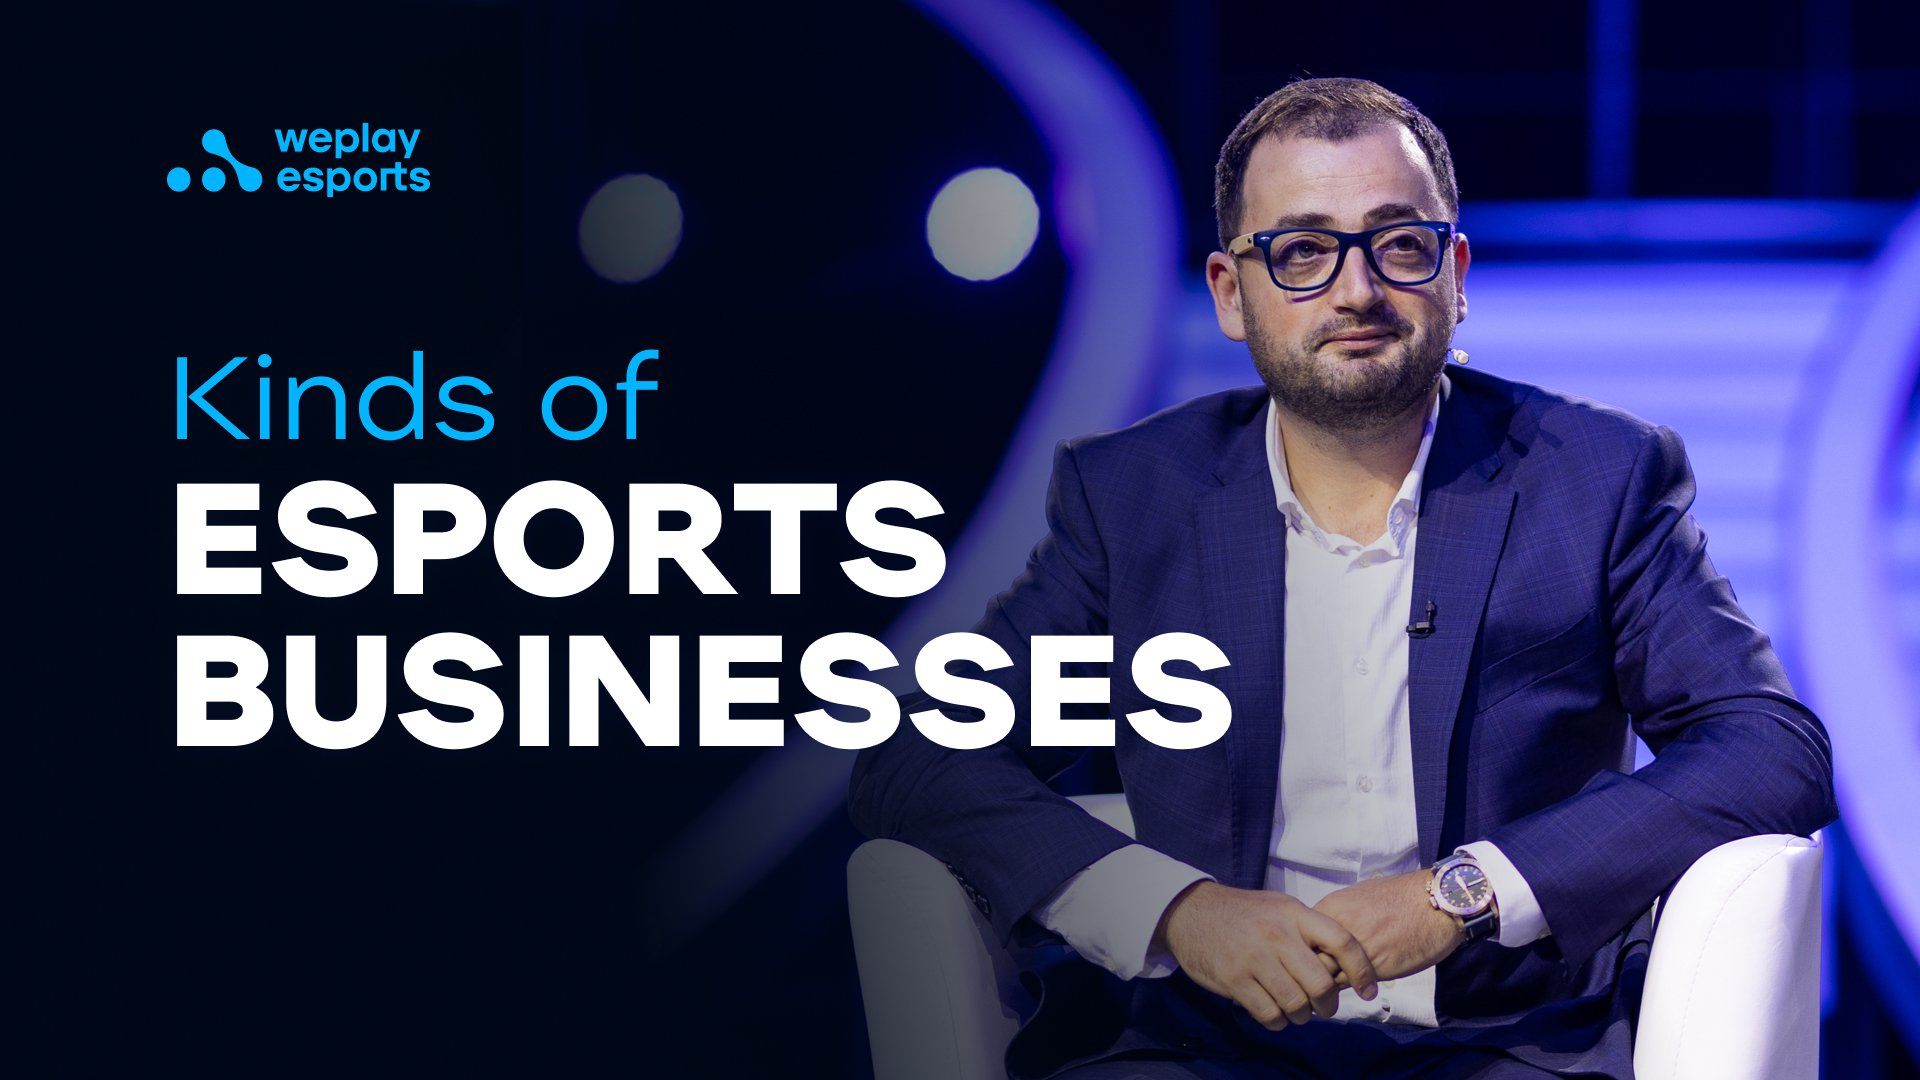 Kinds of Esports Businesses